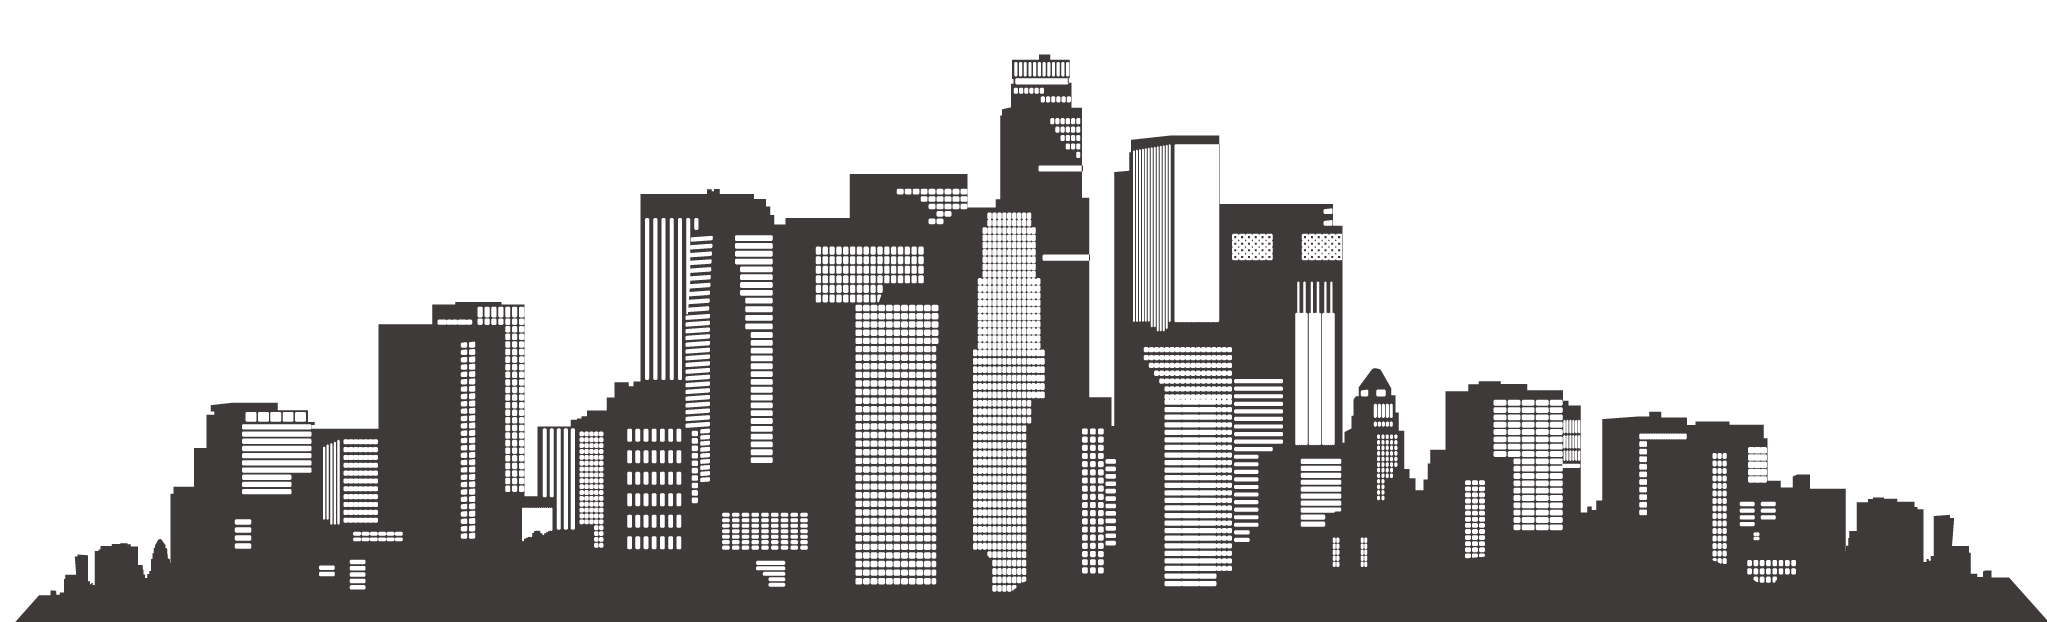 Los angeles skyline silhouette. City clipart architecture